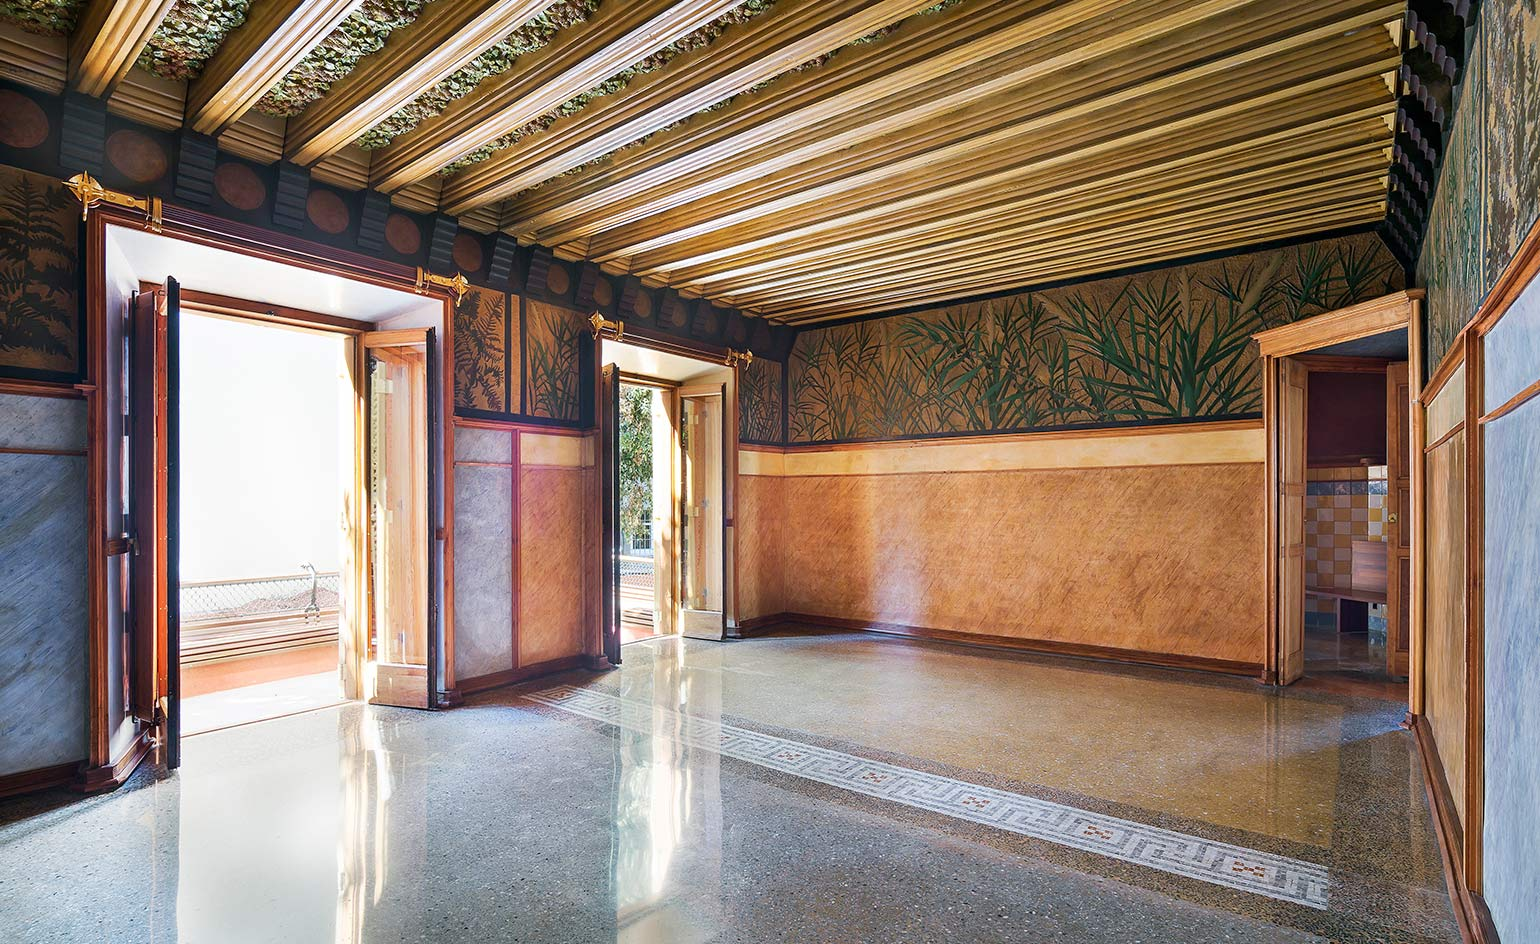 Gaud 39 s casa vicens reopens to the public in barcelona - Casa torres barcelona ...